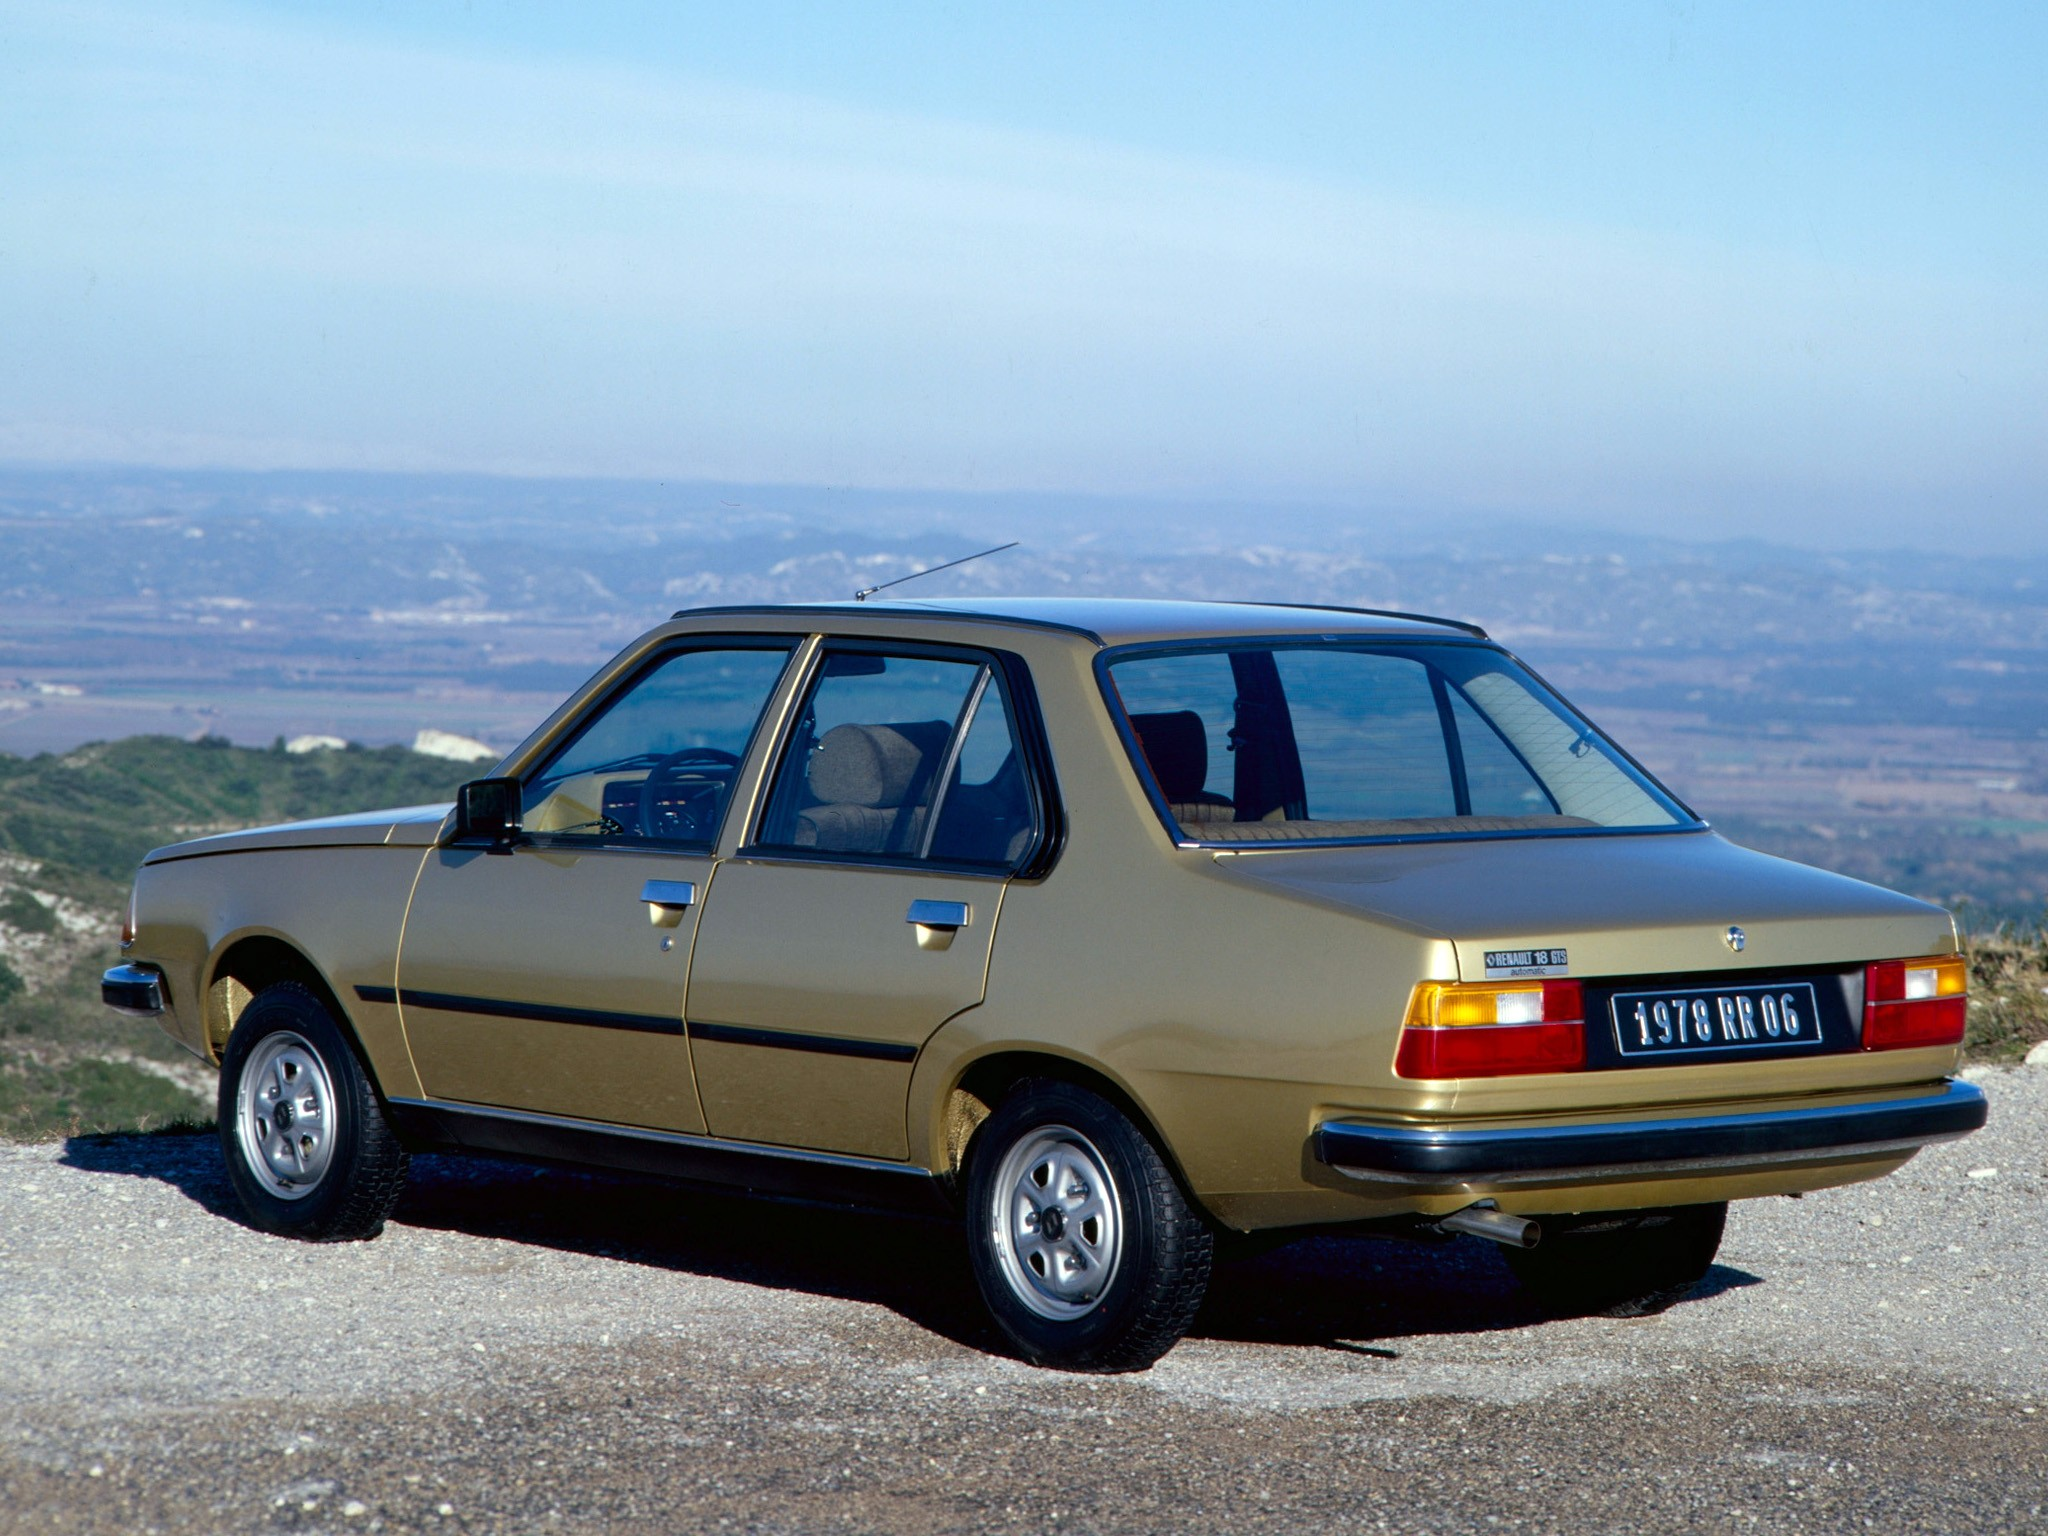 Lada Priora 2008 likewise Volvo 940 1990 further Peugeot 504 Coupe 1977 in addition Lemans further Volvo 144 1967. on green car engine